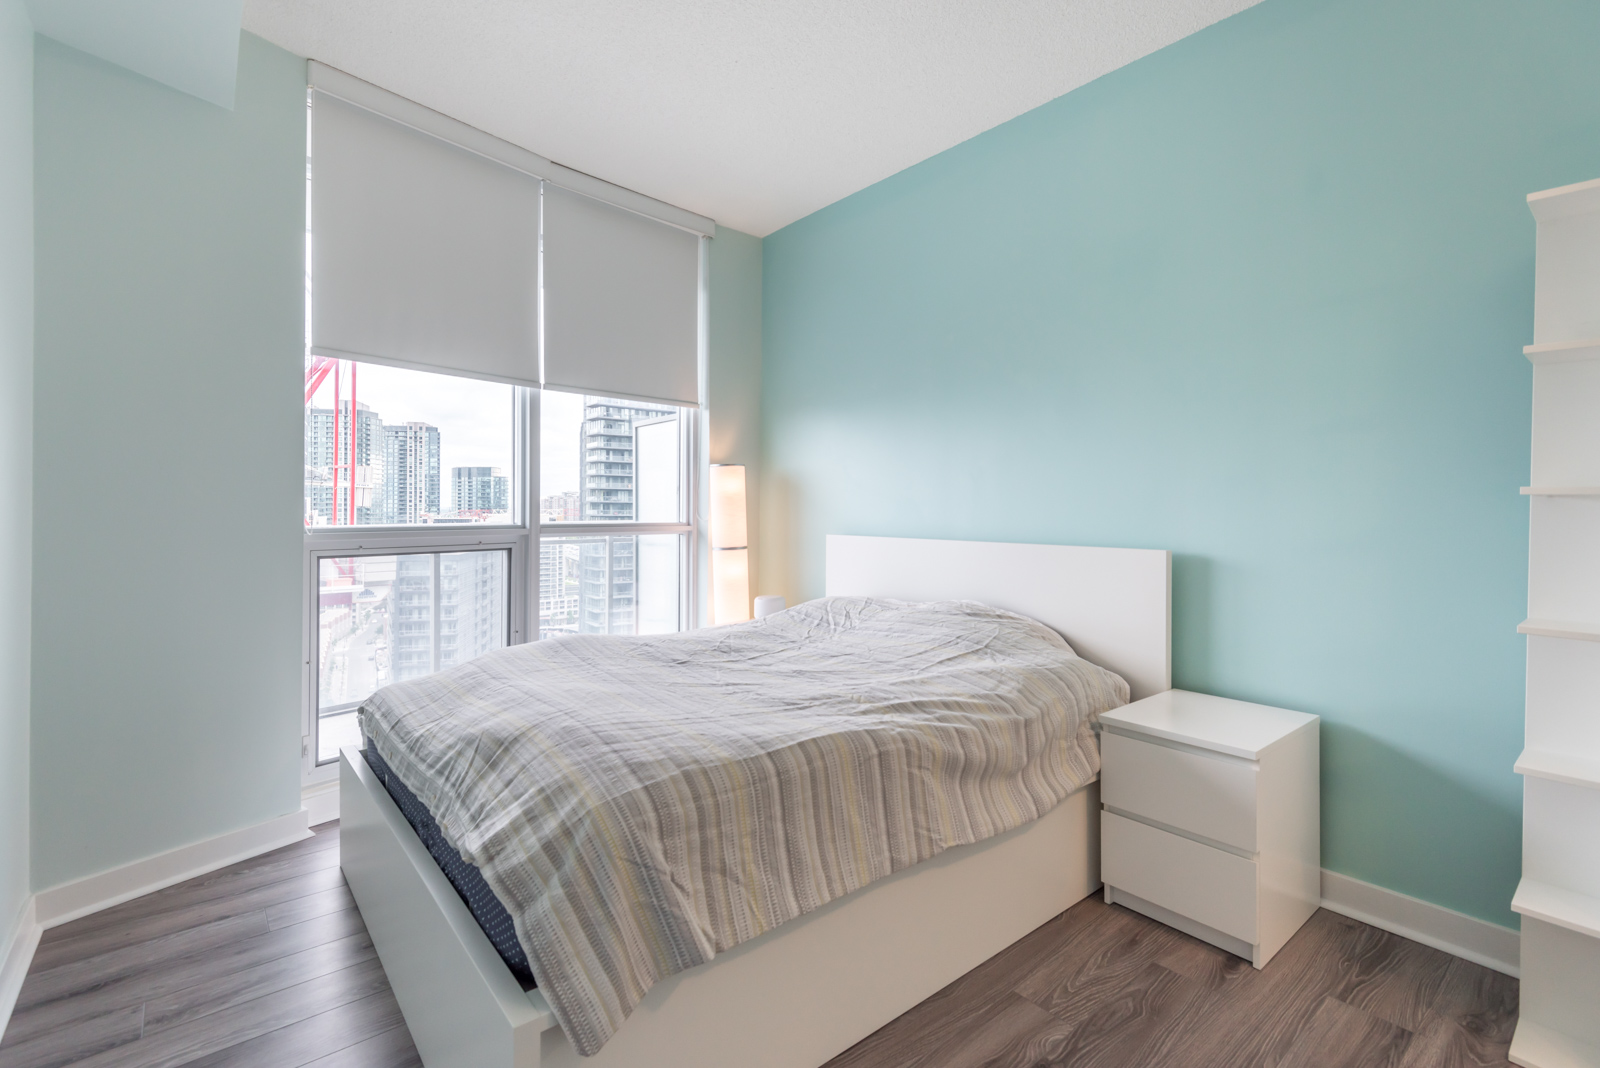 A photo of the master bedroom. We also see the windows and city behind them, and blue walls.